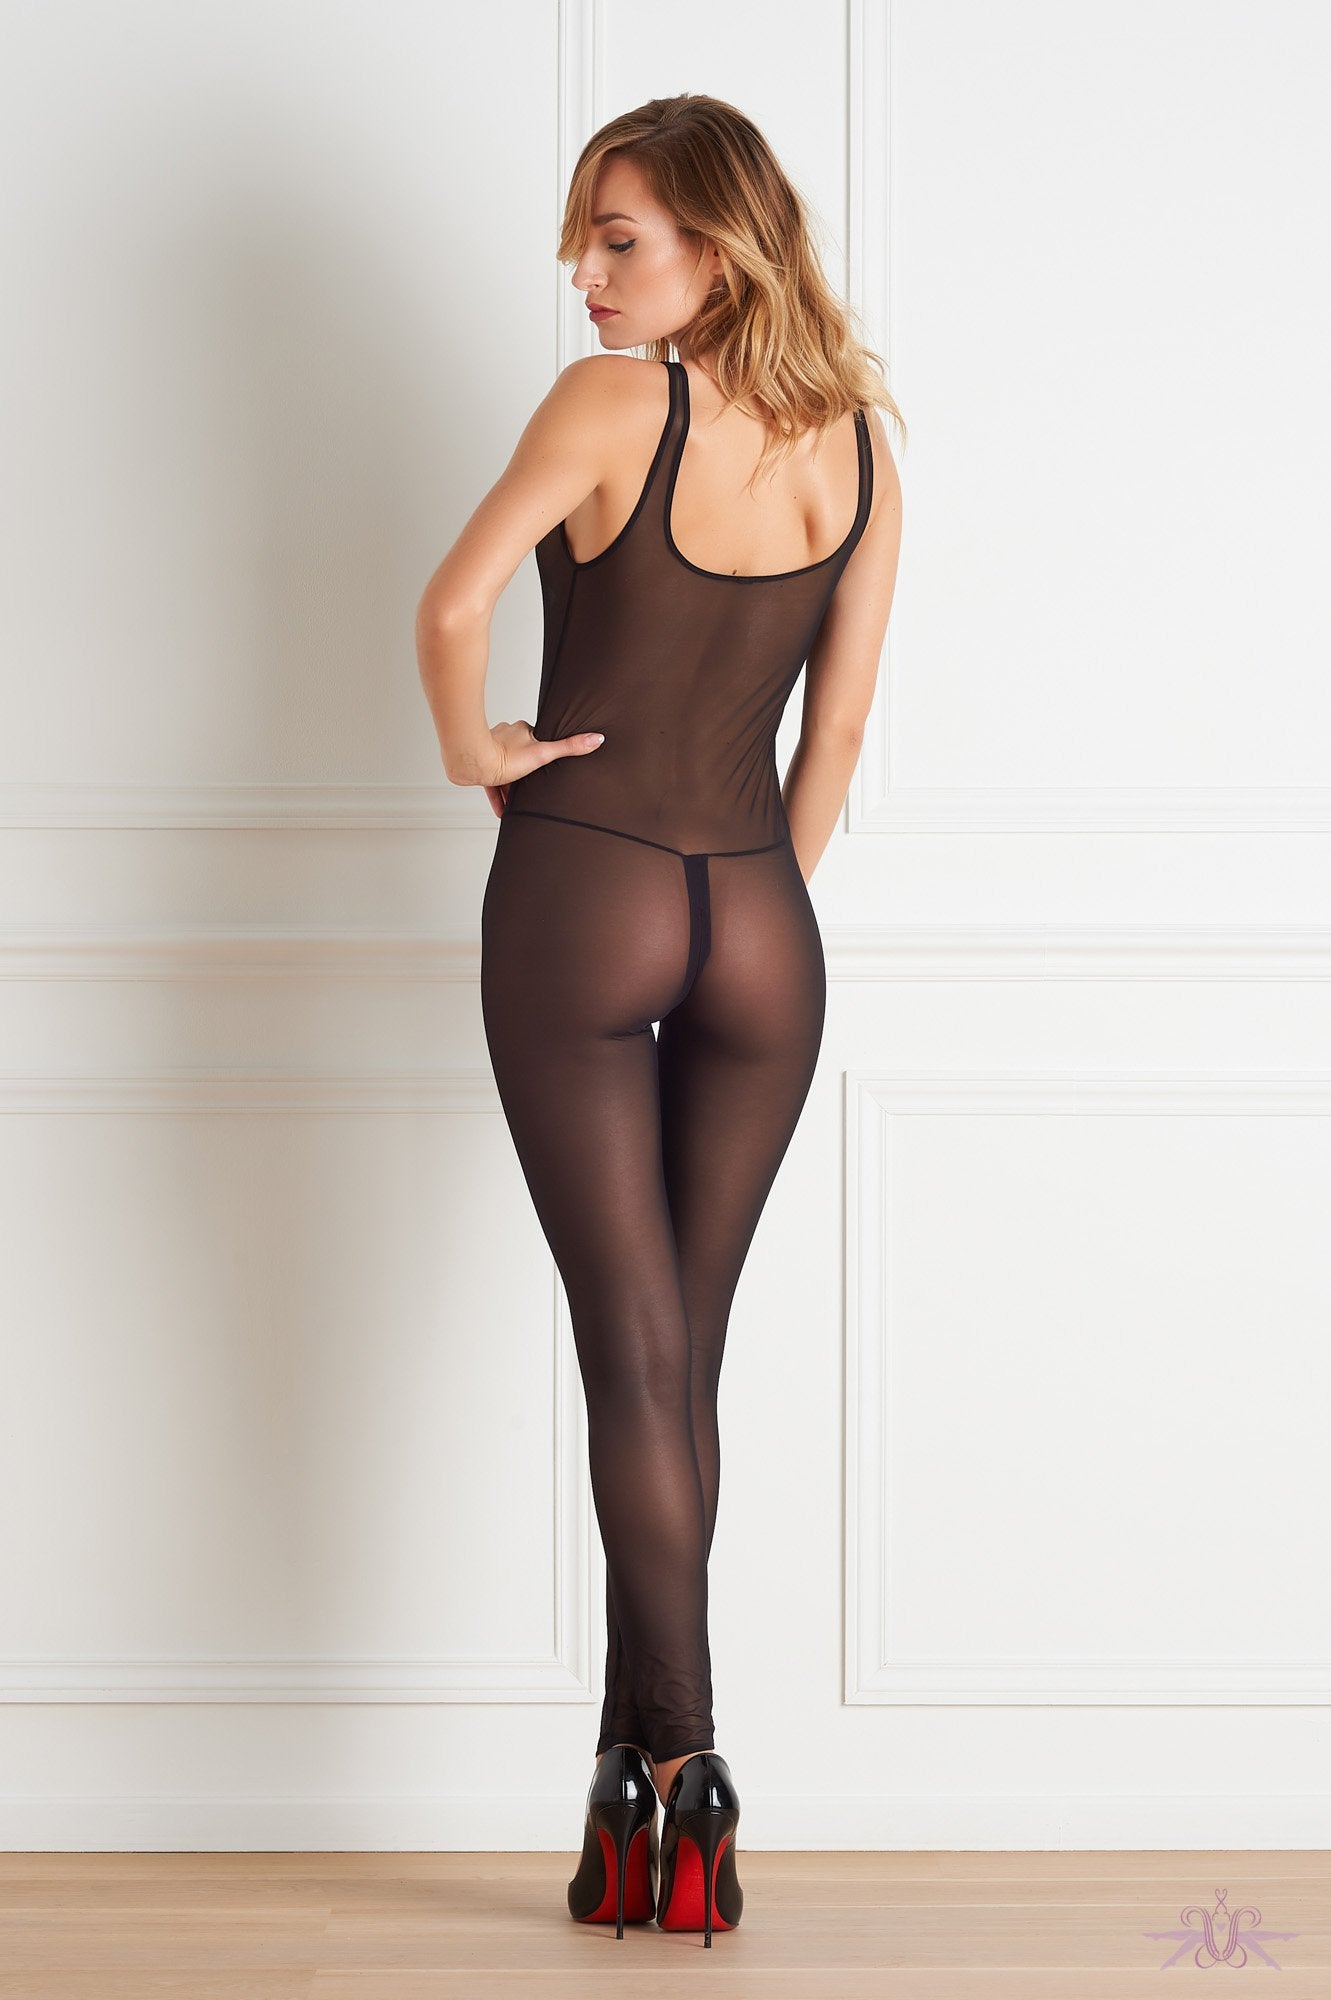 Maison Close Pure Tentation Catsuit - The Hosiery Box